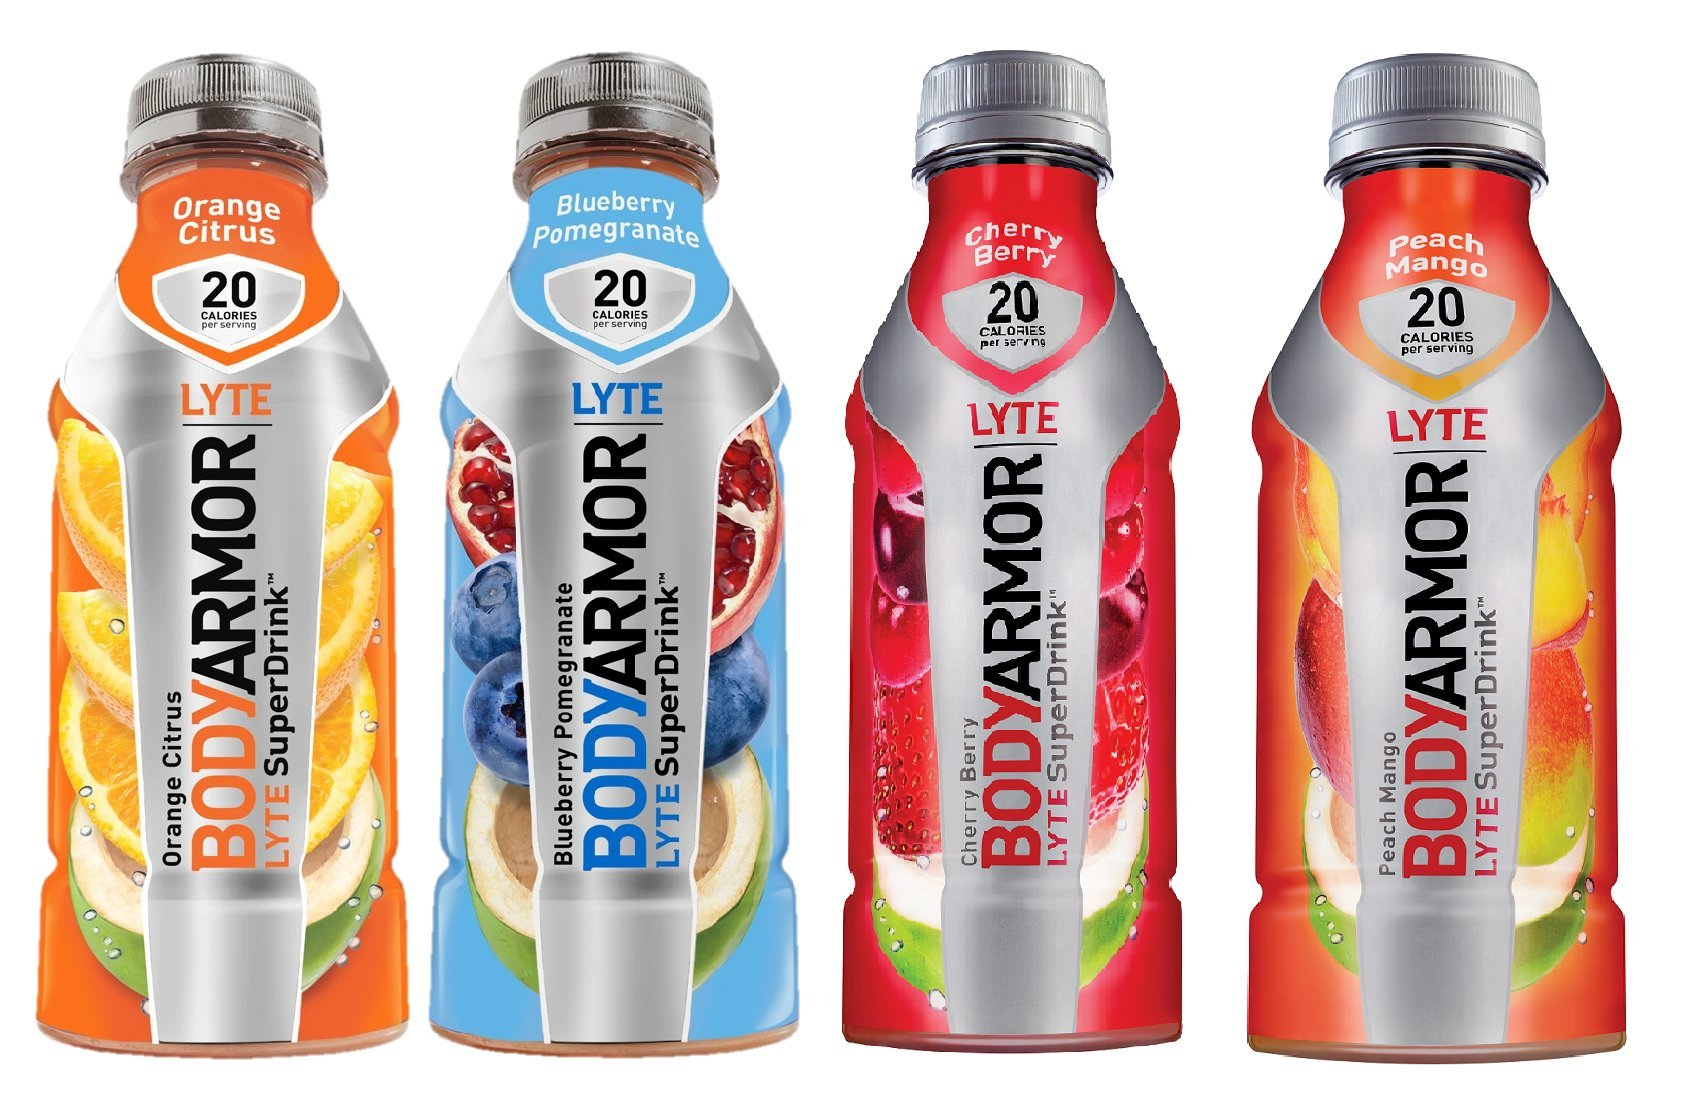 Bodyarmor LYTE Superdrinks Variety Pack, 4 Flavors, 16 Ounce (24 Bottles)